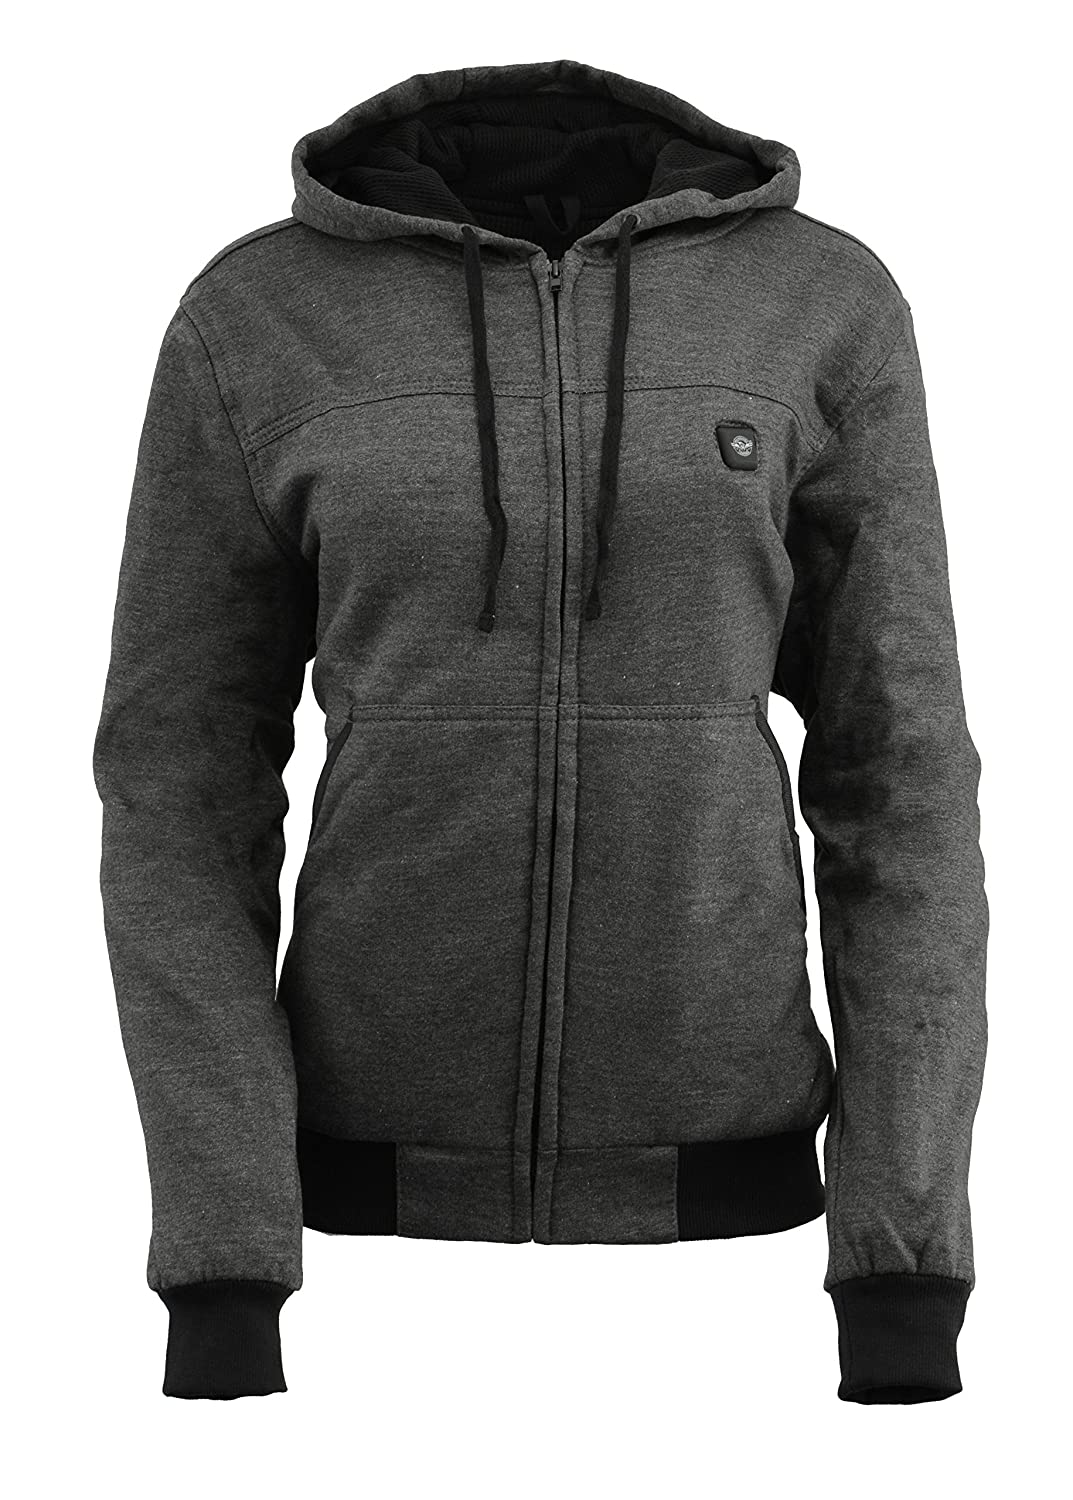 Milwaukee Leather Women's Zipper Front Heated Hoodie (Black, S) Milwaukee Performance MPL2713-BLACK-SM